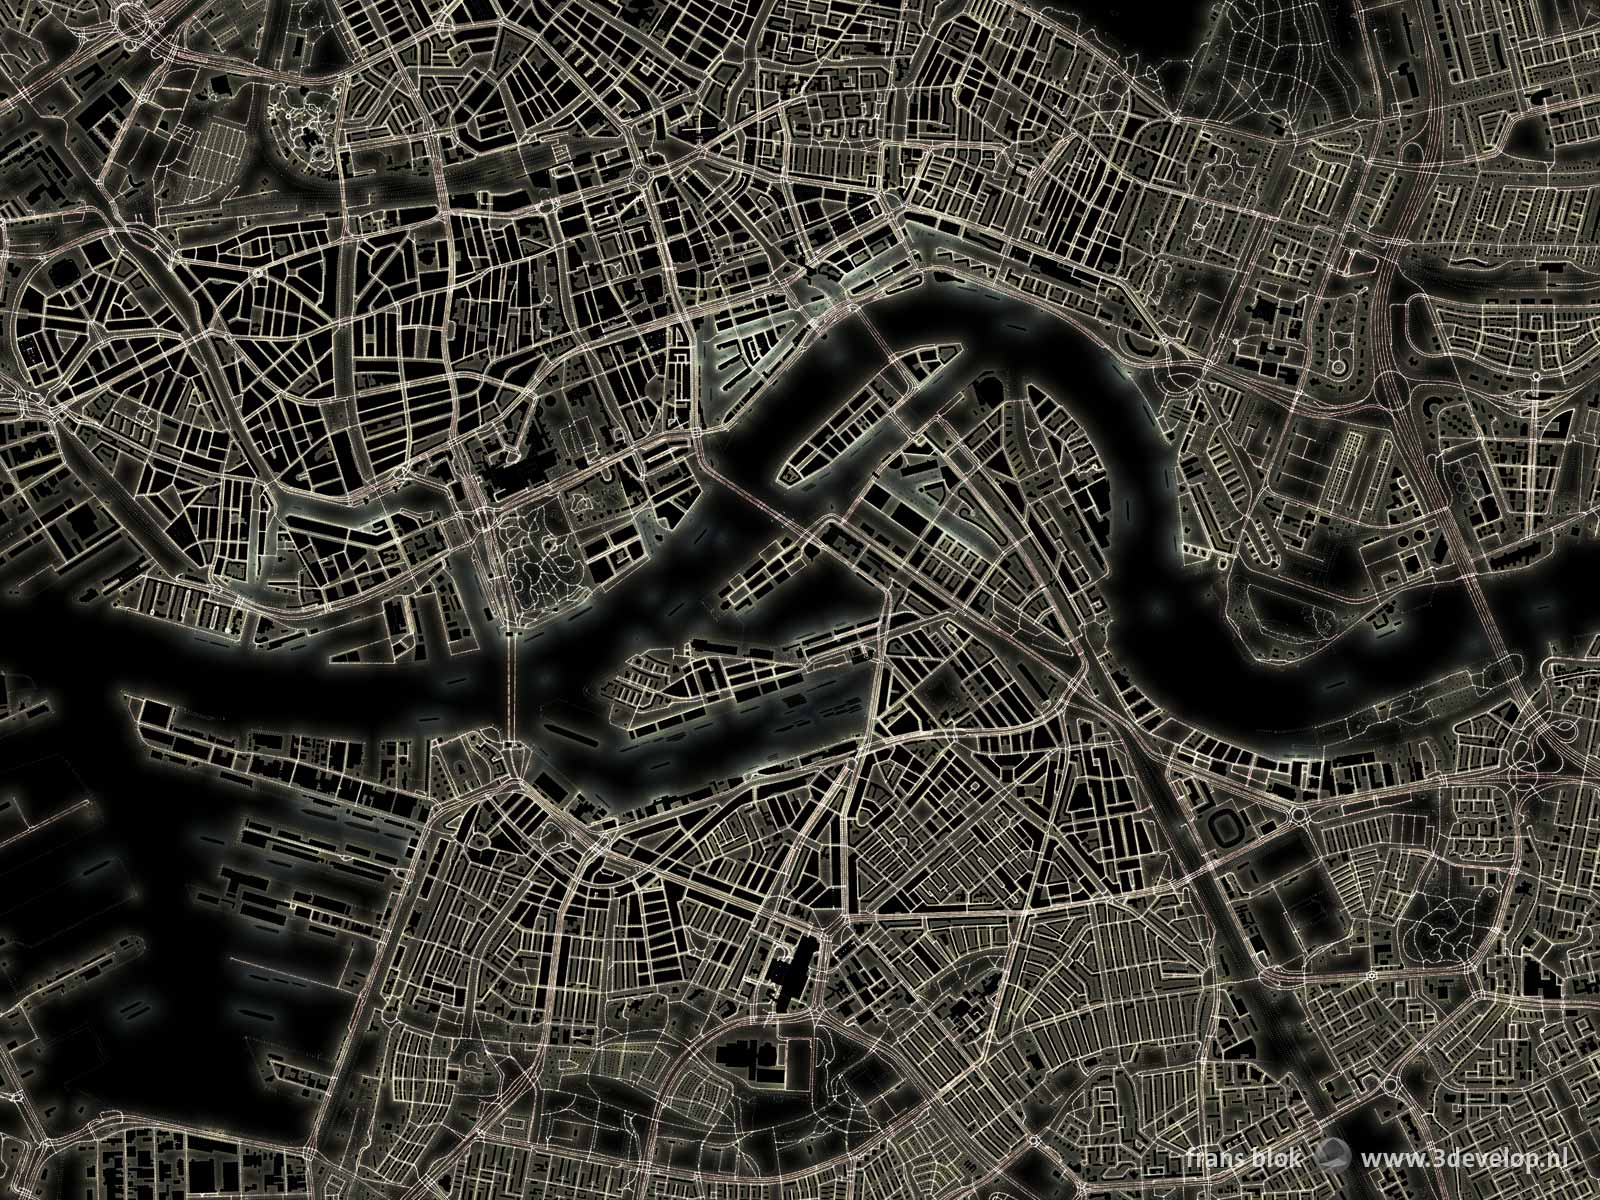 The Light Map of Rotterdam, a plan of the city center and its surroundings showing the city as a network of bright lines and spots against a dark background.